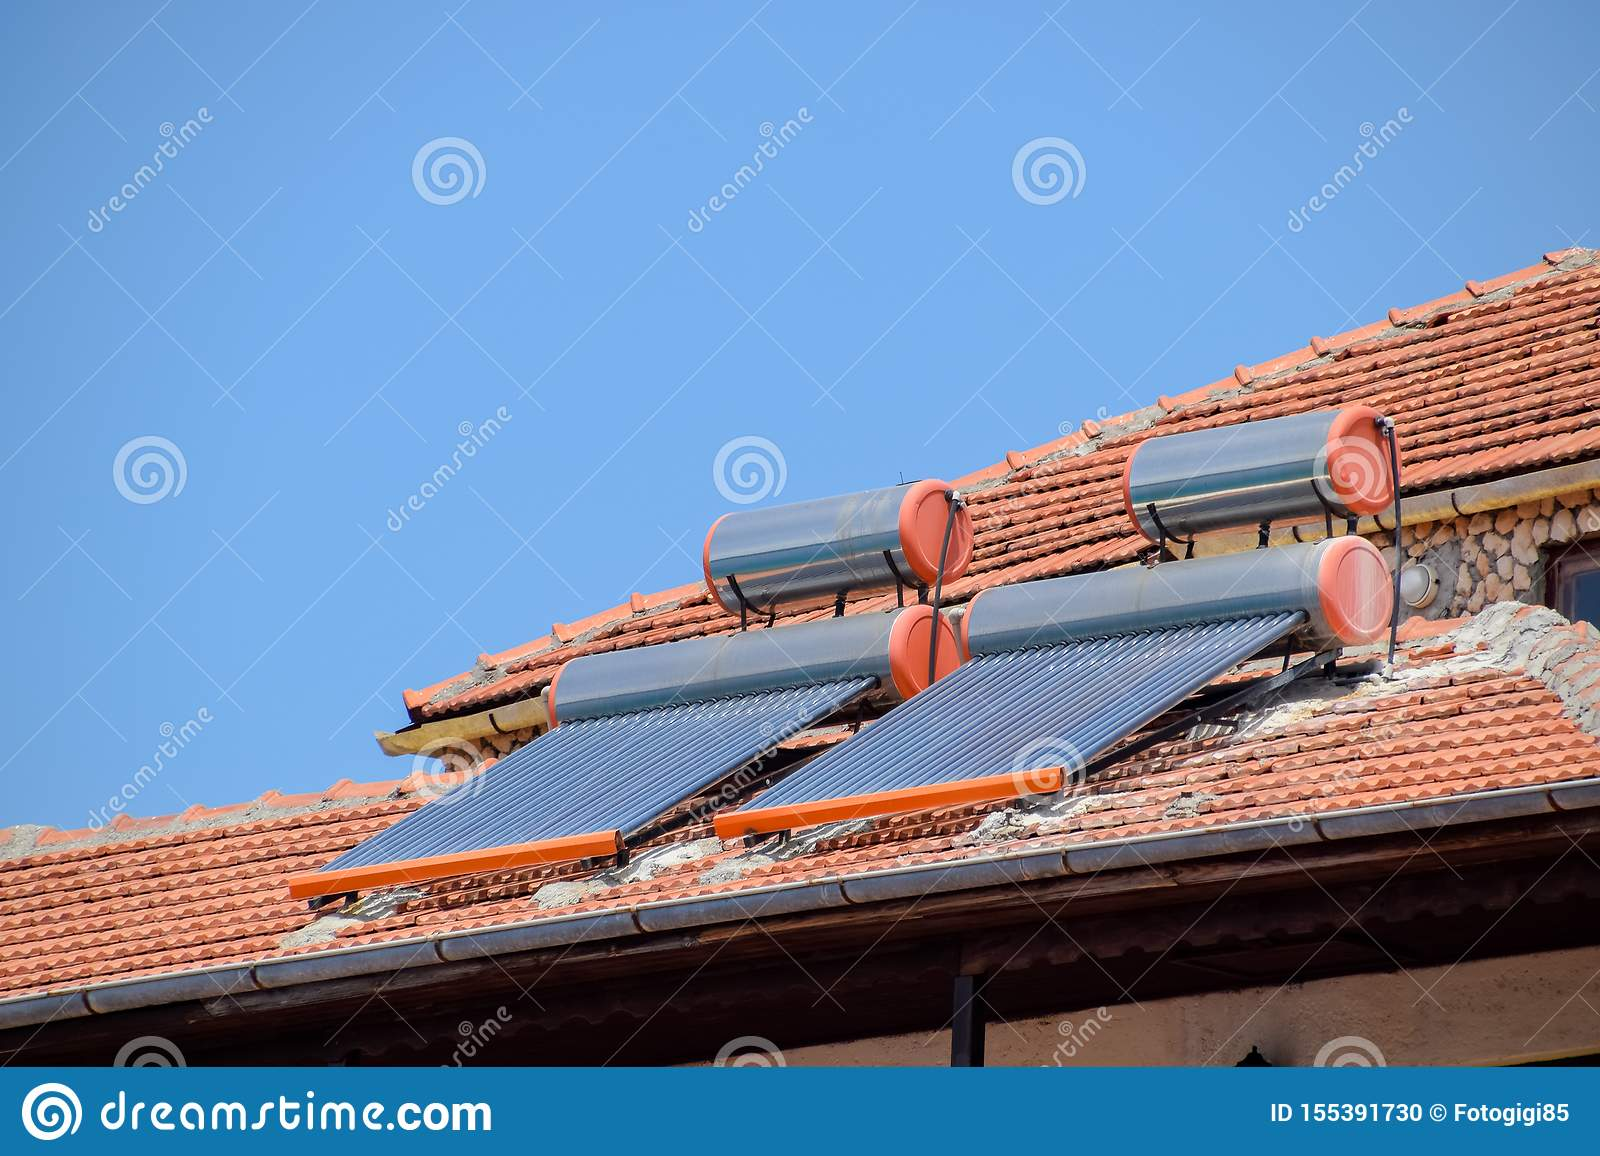 solar panels and barrels for heating water on roof of the house with clay tiles